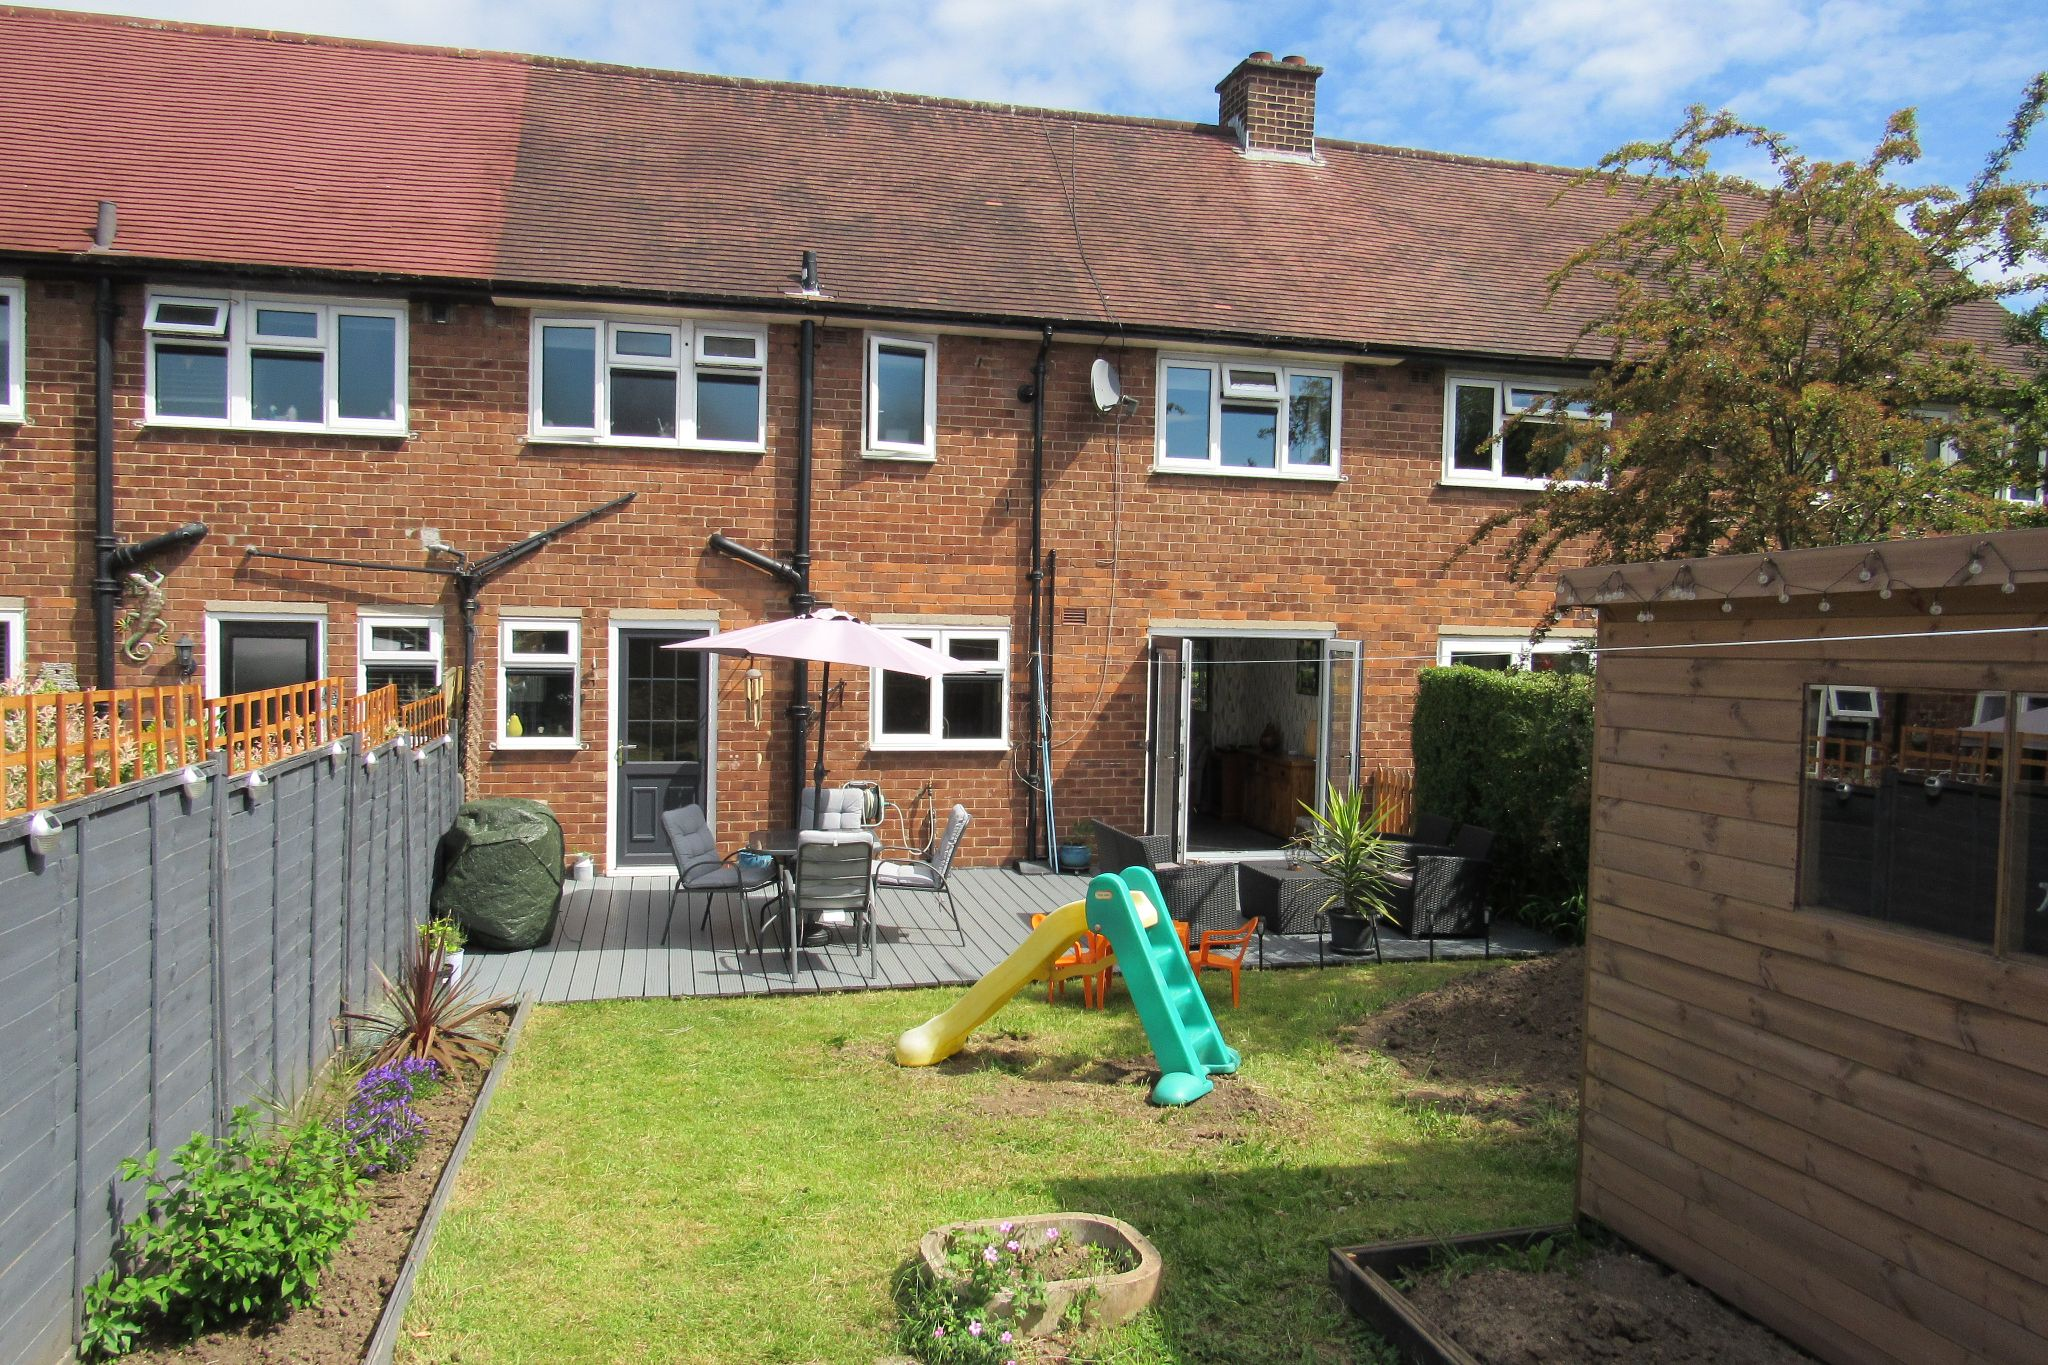 3 bedroom mid terraced house SSTC in Altrincham - Photograph 24.